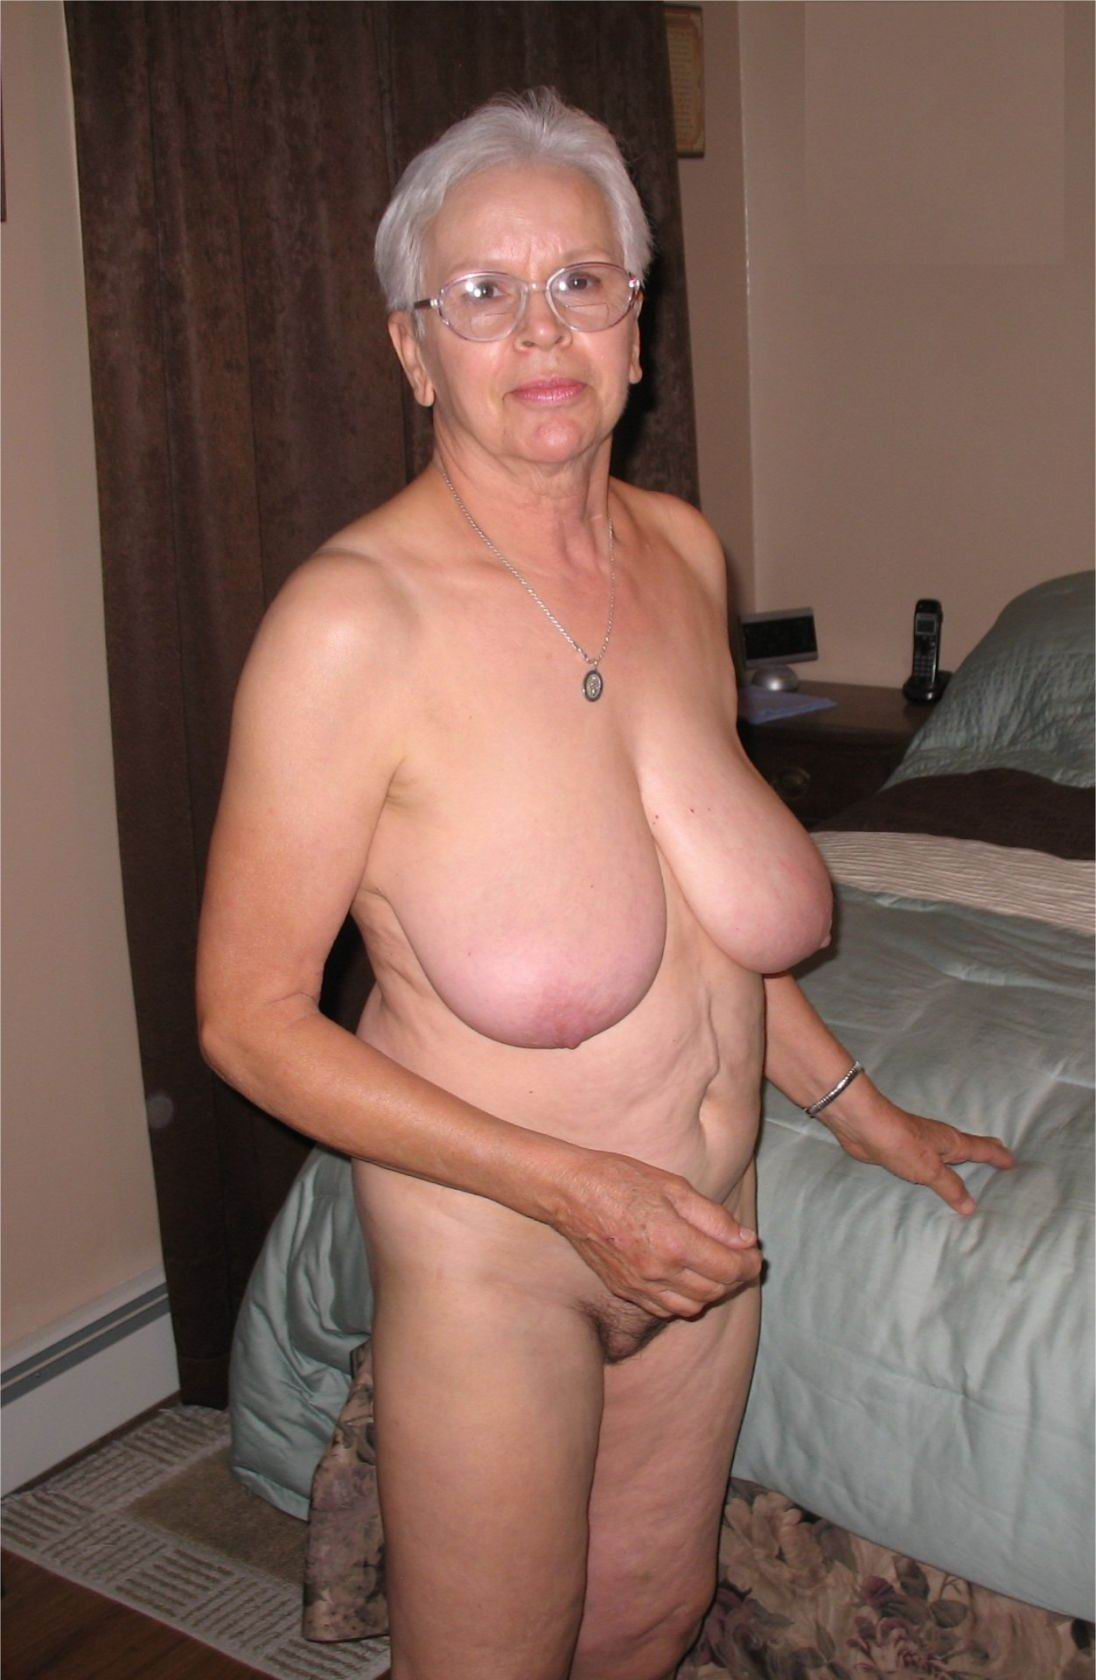 There are Big tits women over 70 nude topic congratulate